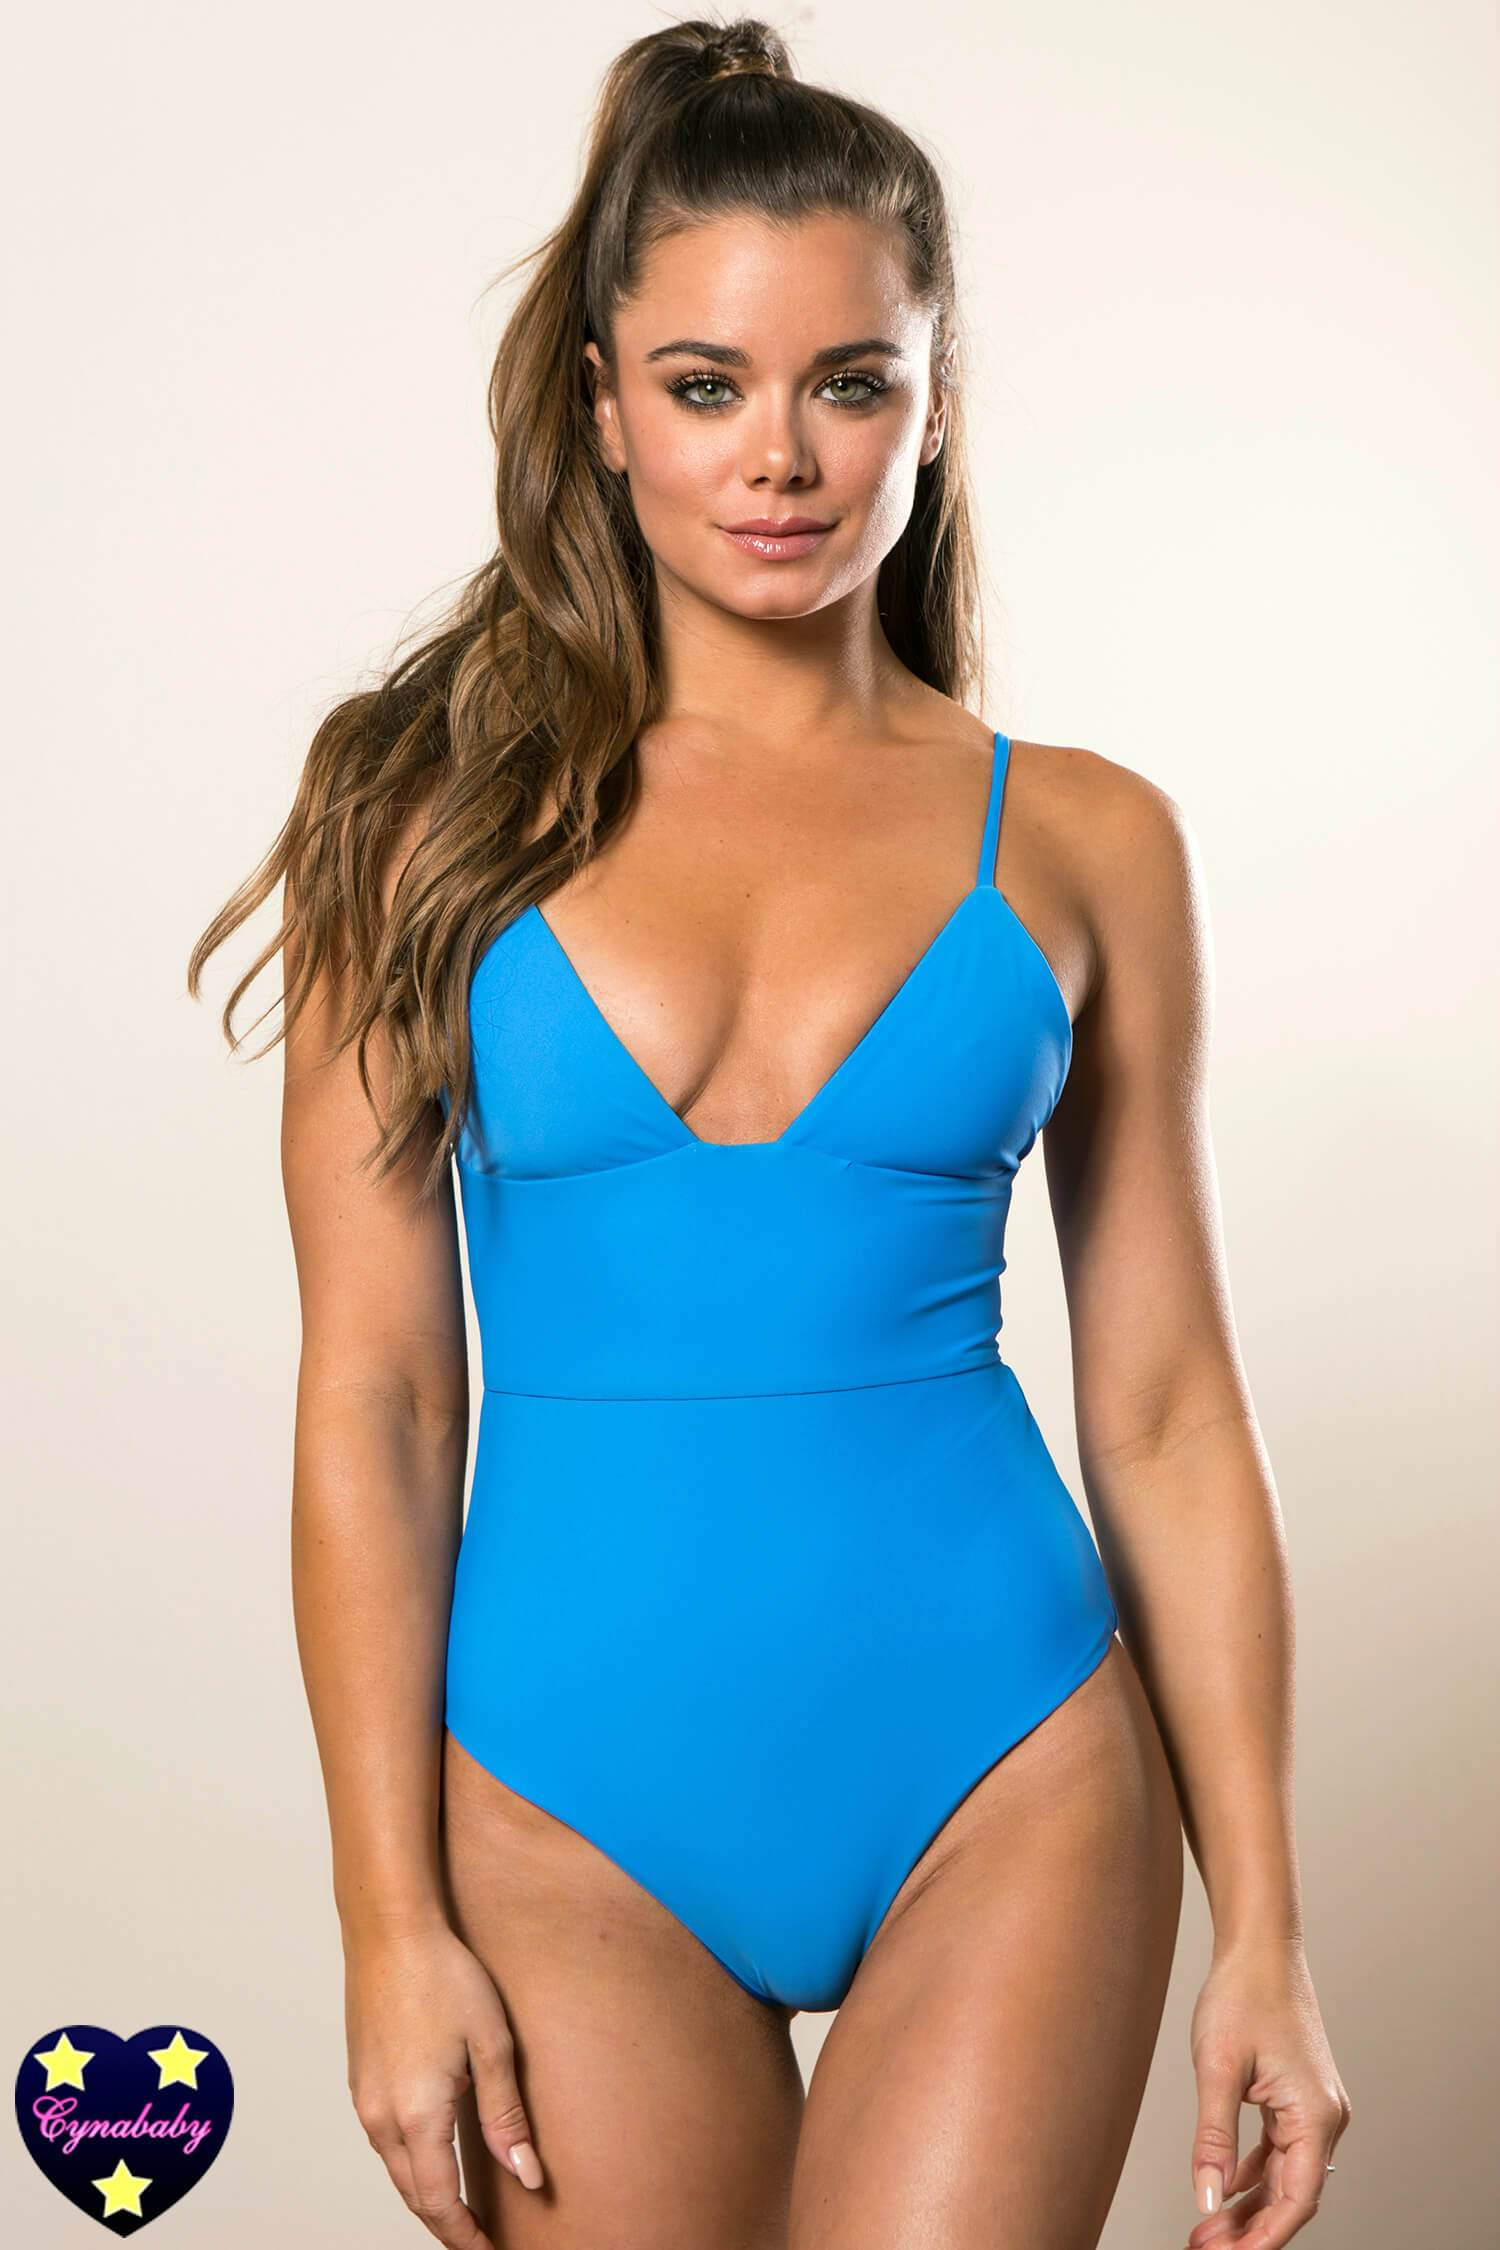 Custom High Waist One-Piece Monokini with Back Bow - Electric Ocean Blue